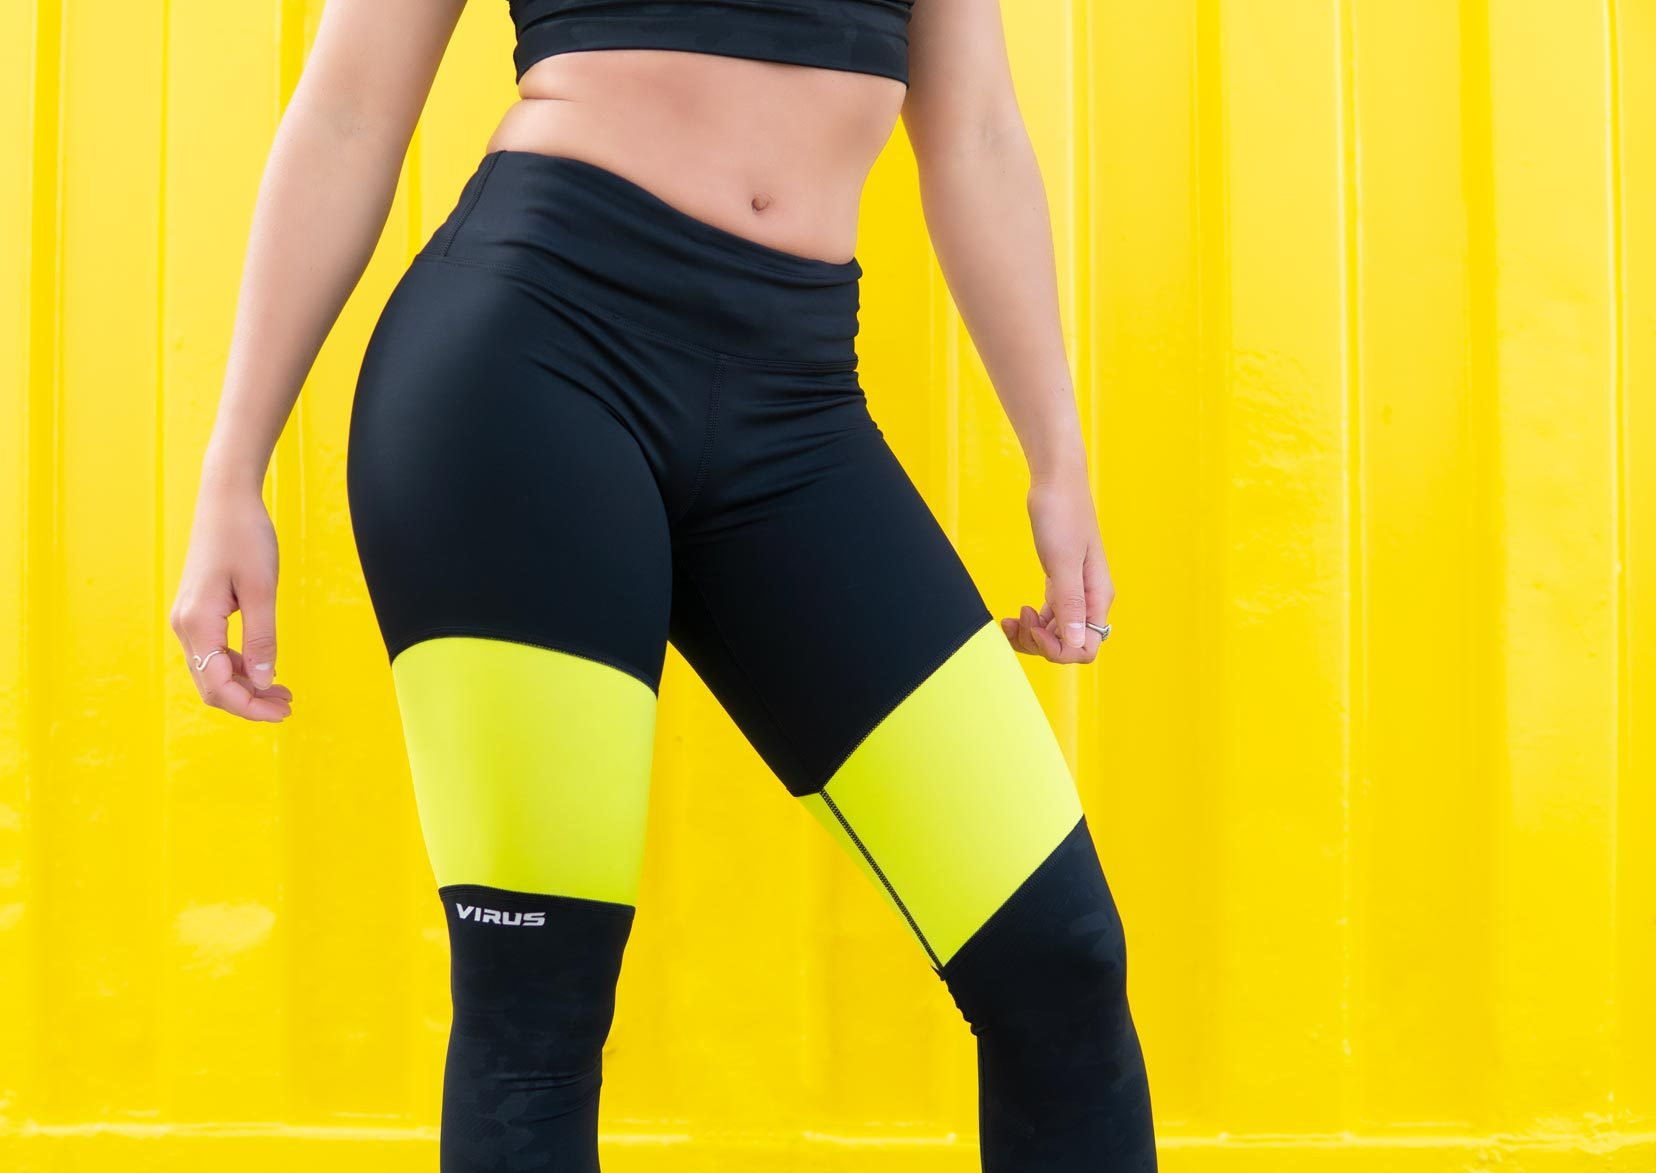 Why do athletes choose Compression Clothing?